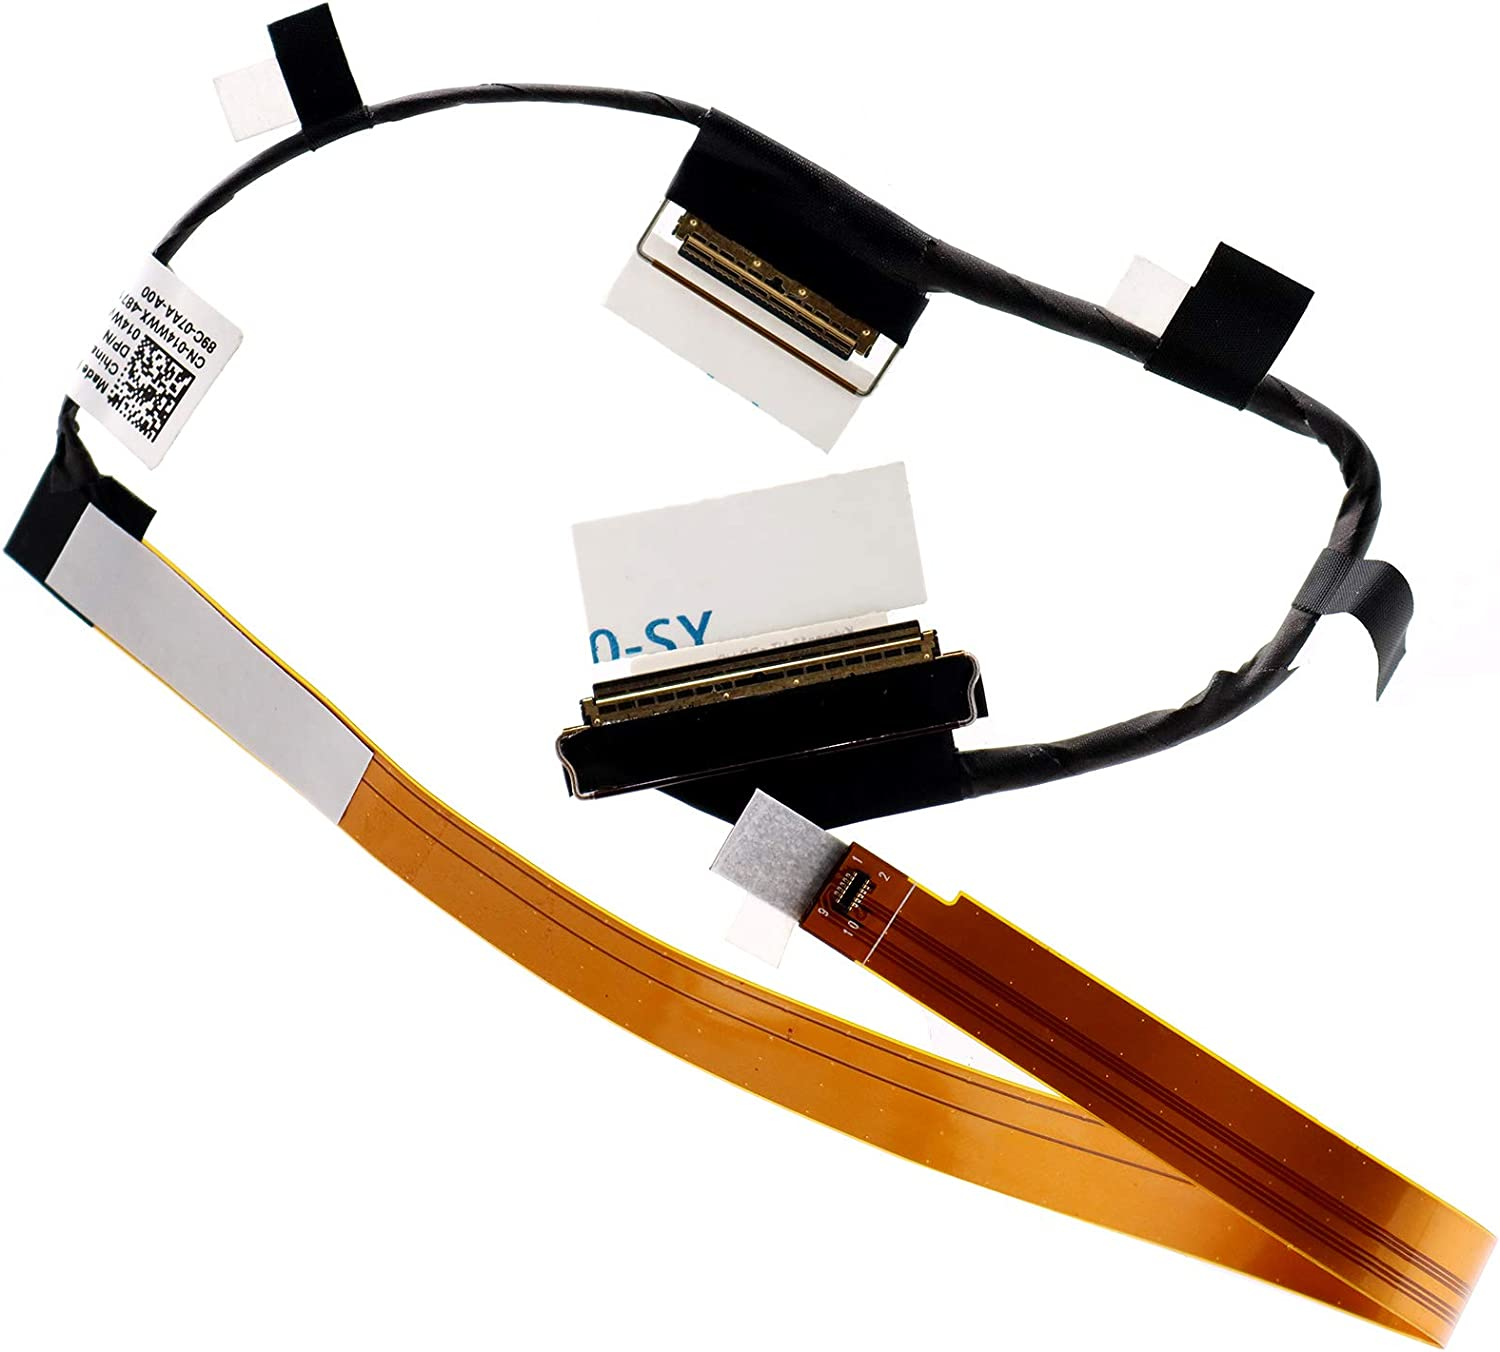 Deal4GO Lvds LCD Cable Kyloren13 NT-EDP FHD Ribbon Flex Cable for Dell Inspiron 13 7373 7370 P83G 450.0B808.0003 14WWX 014WWX